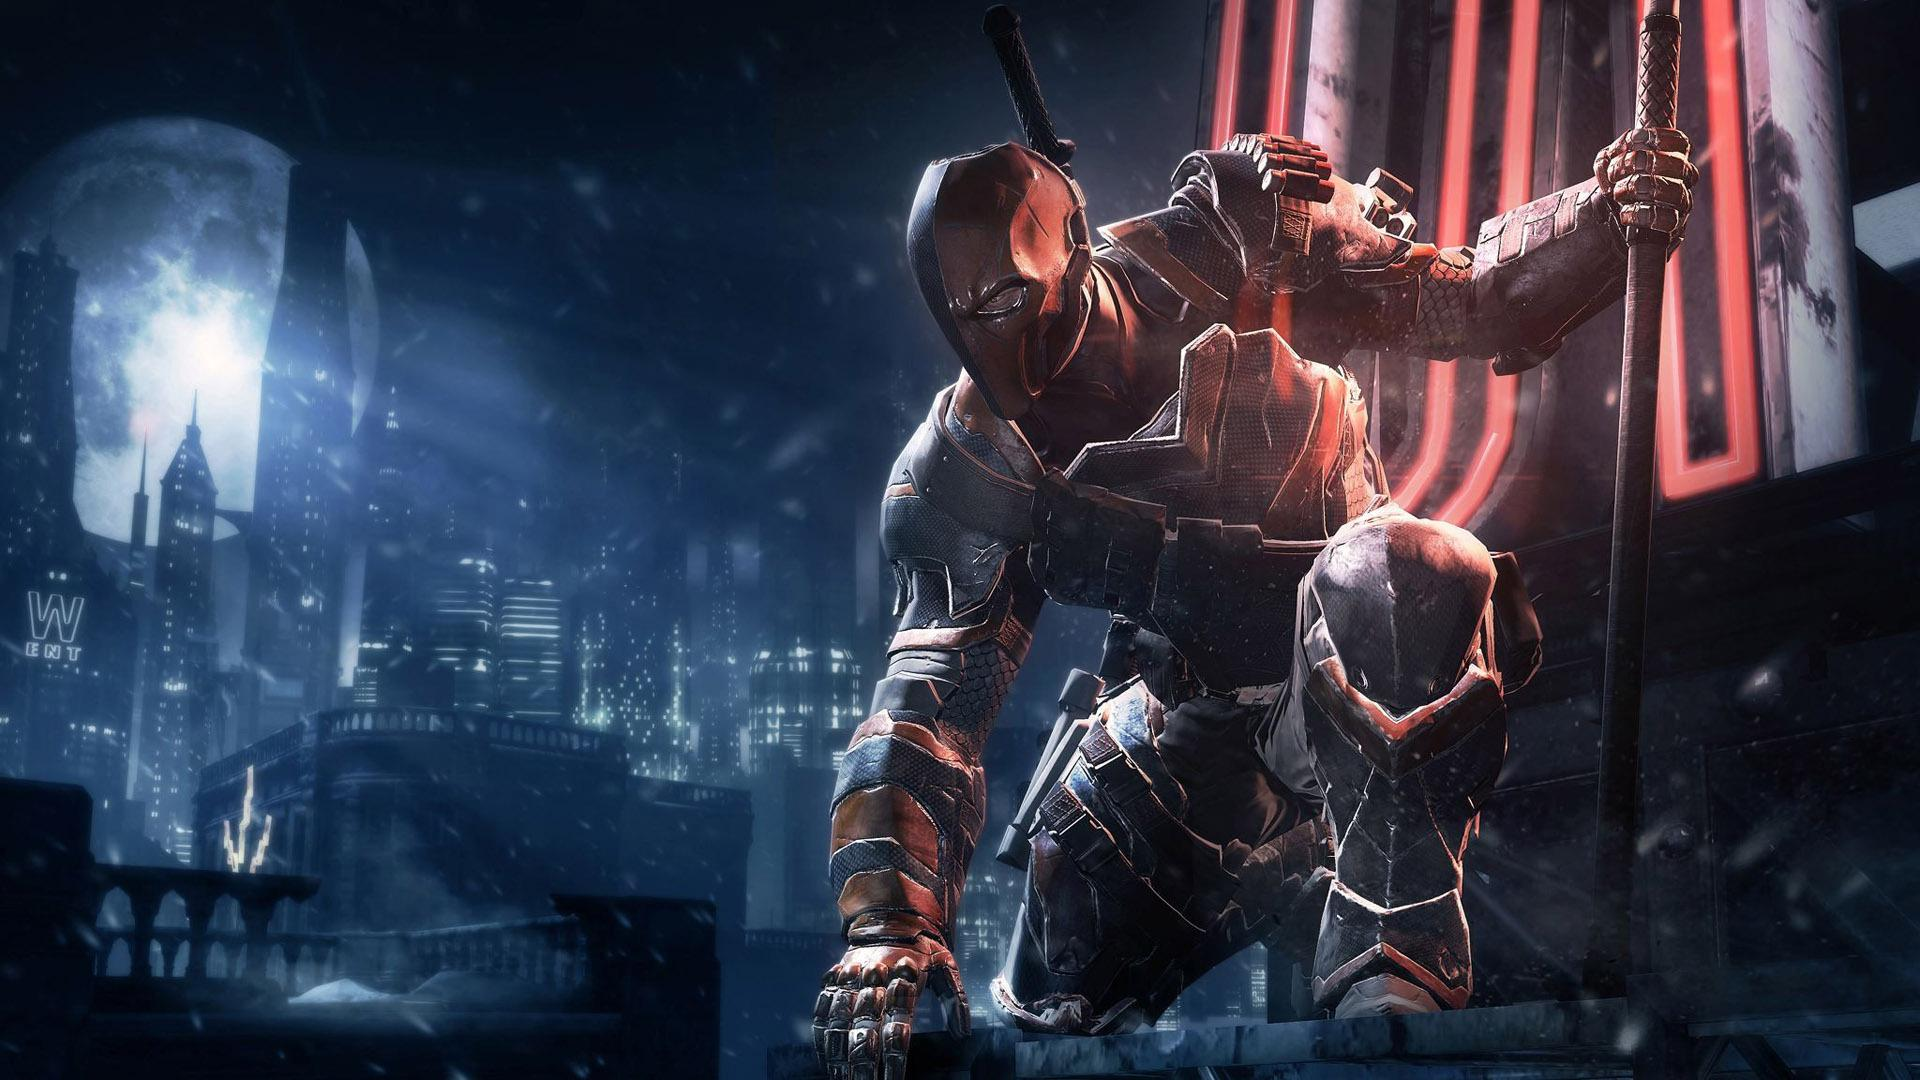 batman arkham origins deathstroke 4k 1548527390 - Batman Arkham Origins Deathstroke 4k - hd-wallpapers, games wallpapers, deathstroke wallpapers, batman arkham origins wallpapers